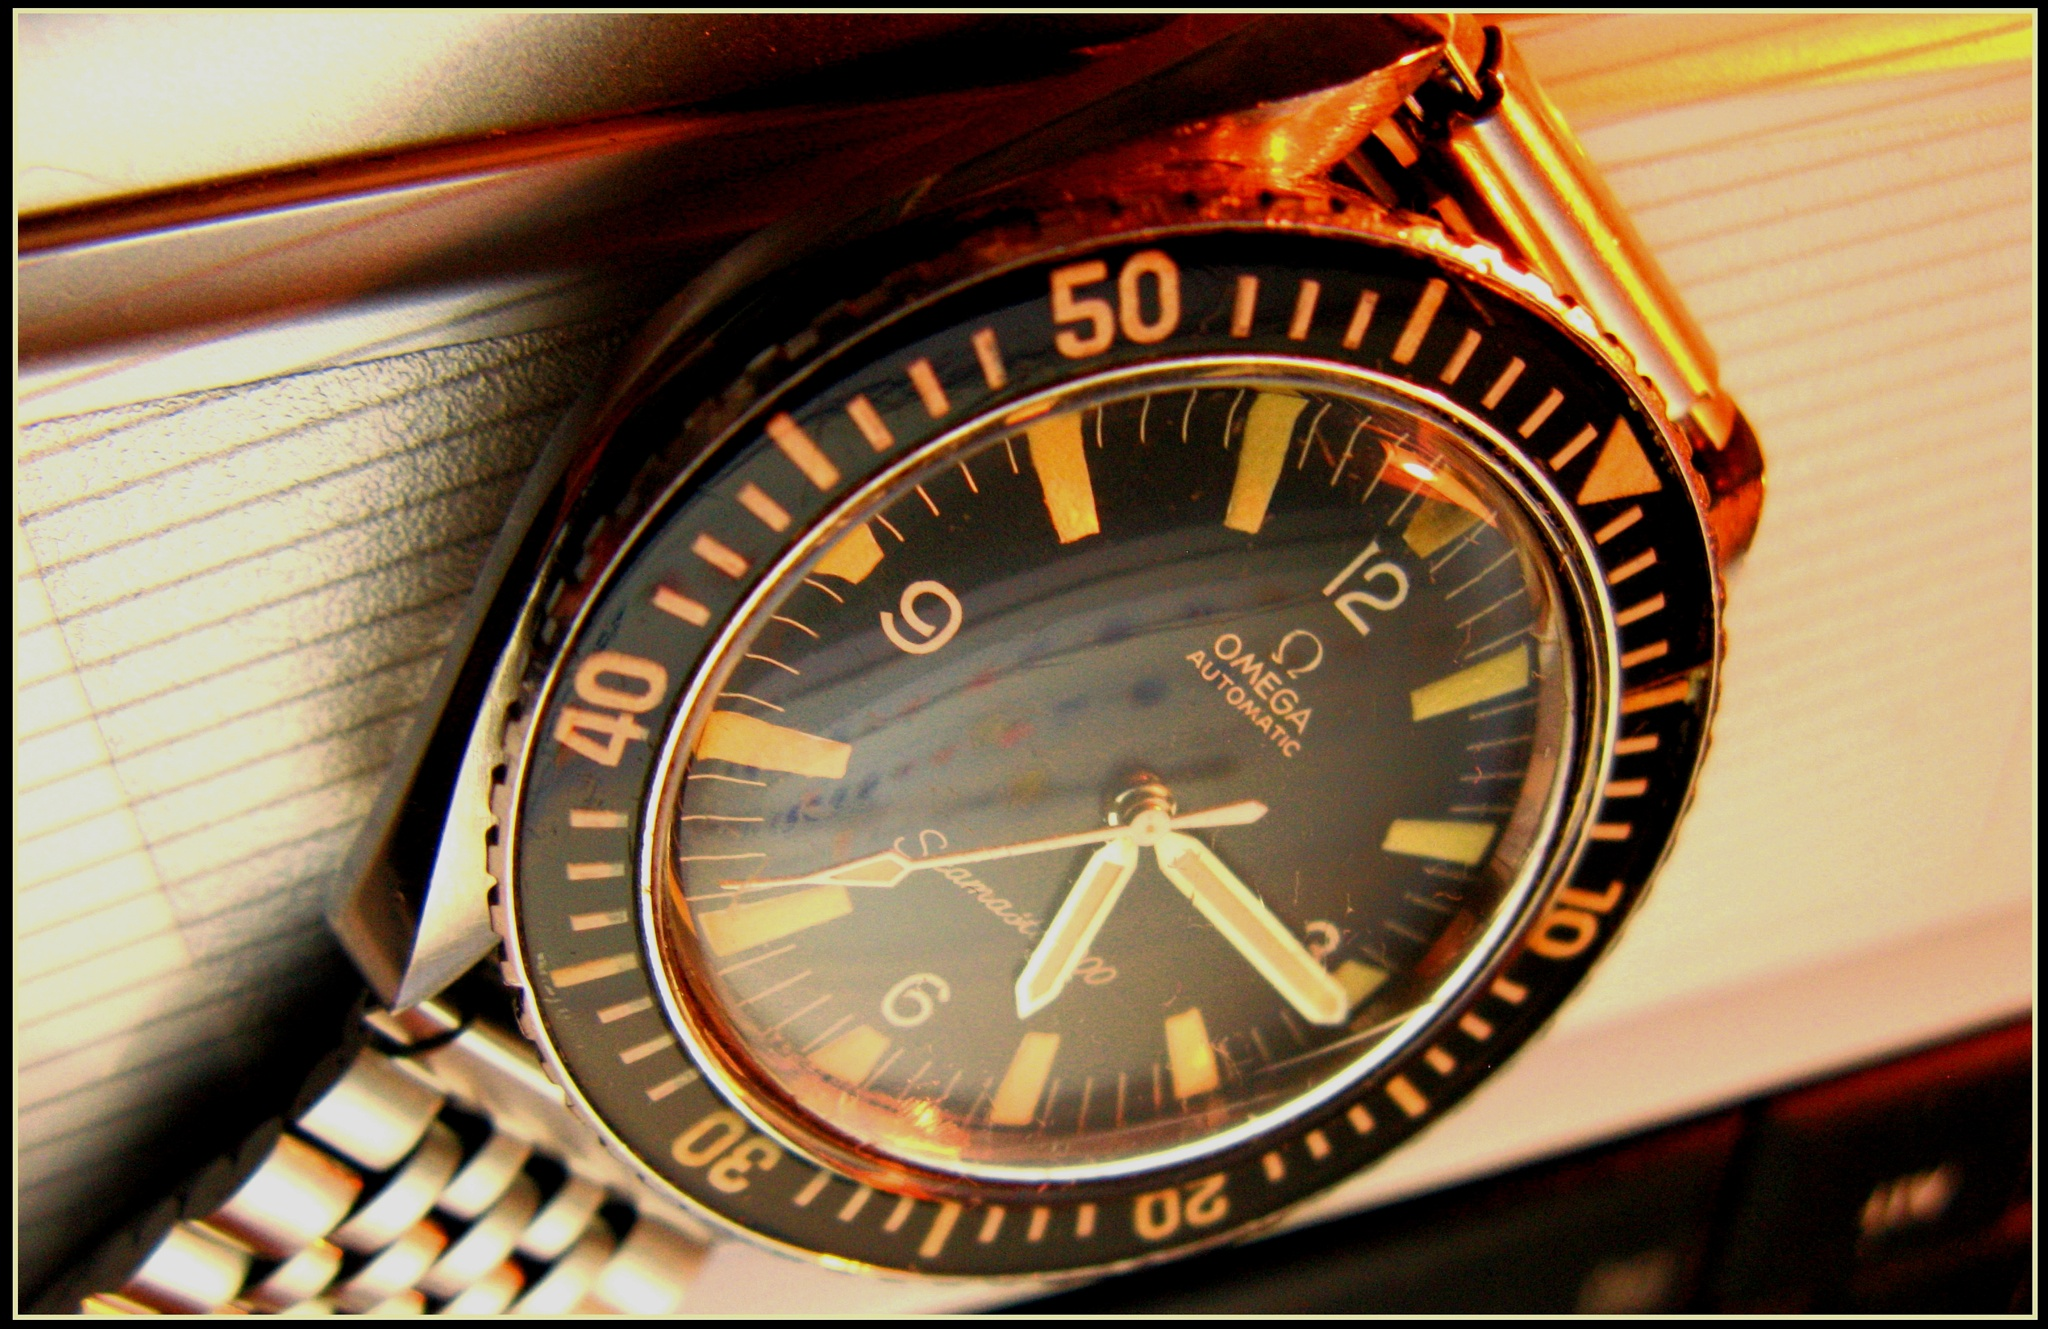 Vintage Omega Seamaster 300 by Philippines the beautiful